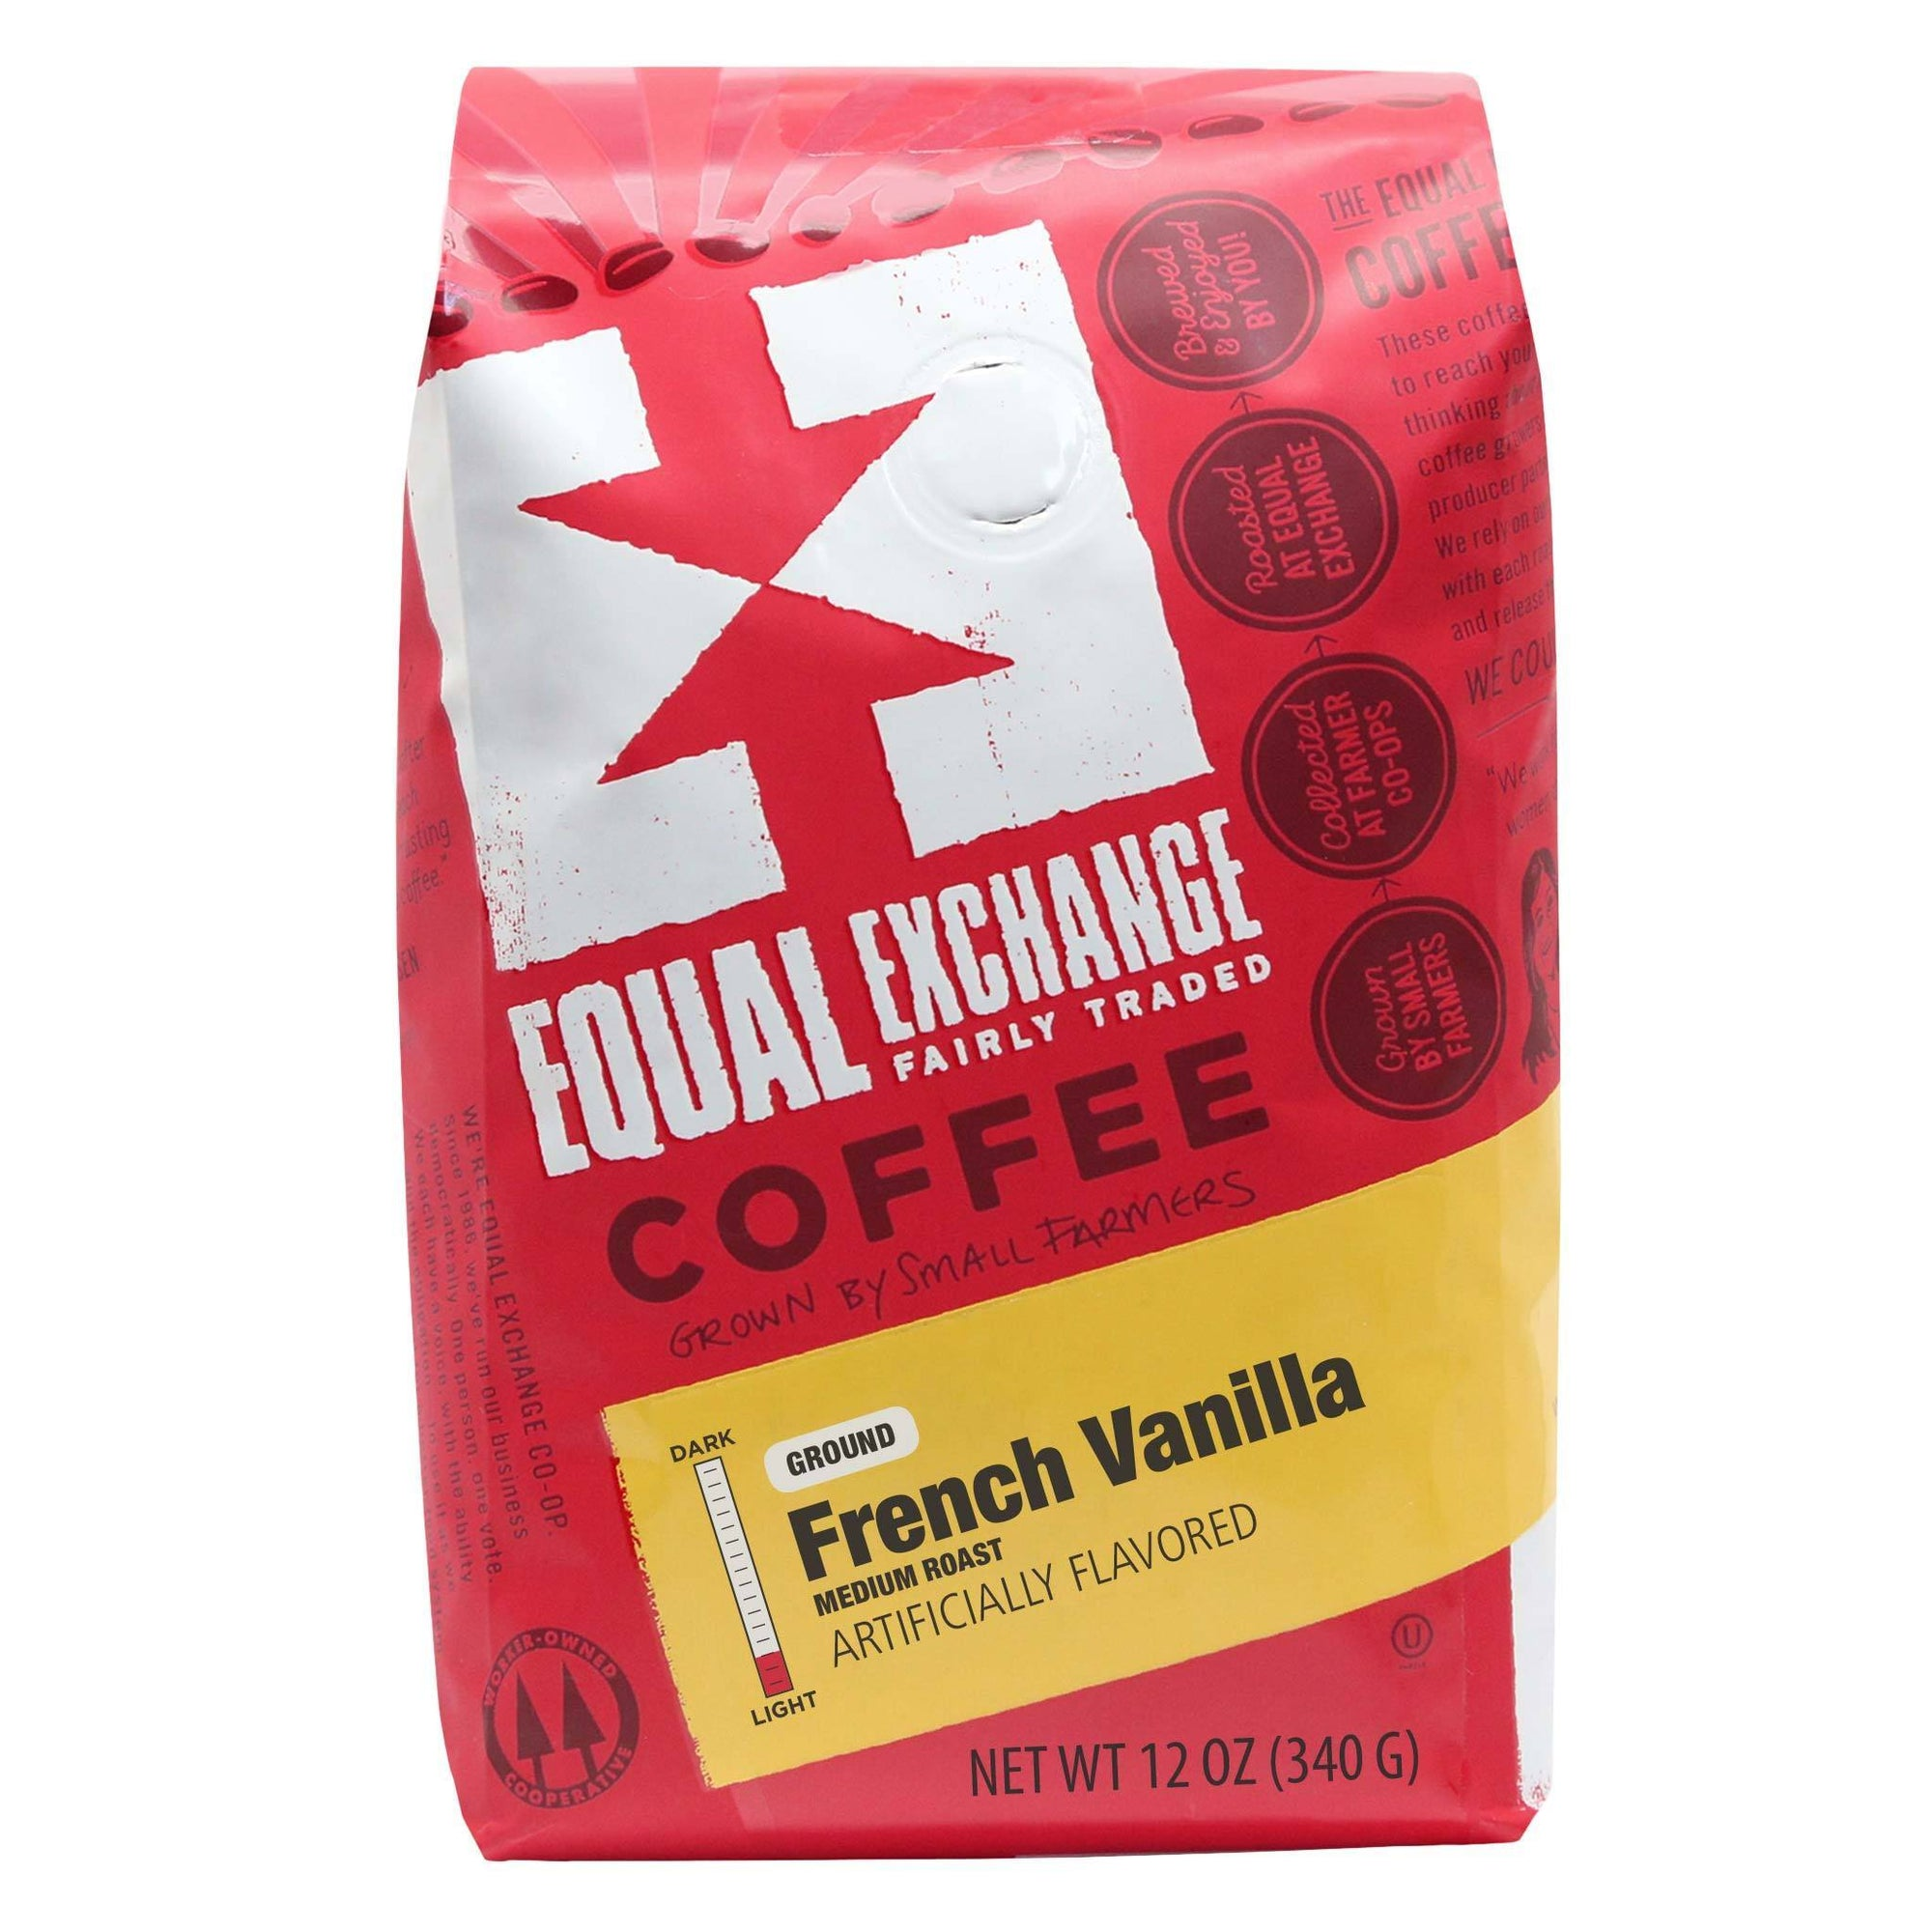 French Vanilla Organic Coffee 12oz- Equal Exchange - Ground (Drip)